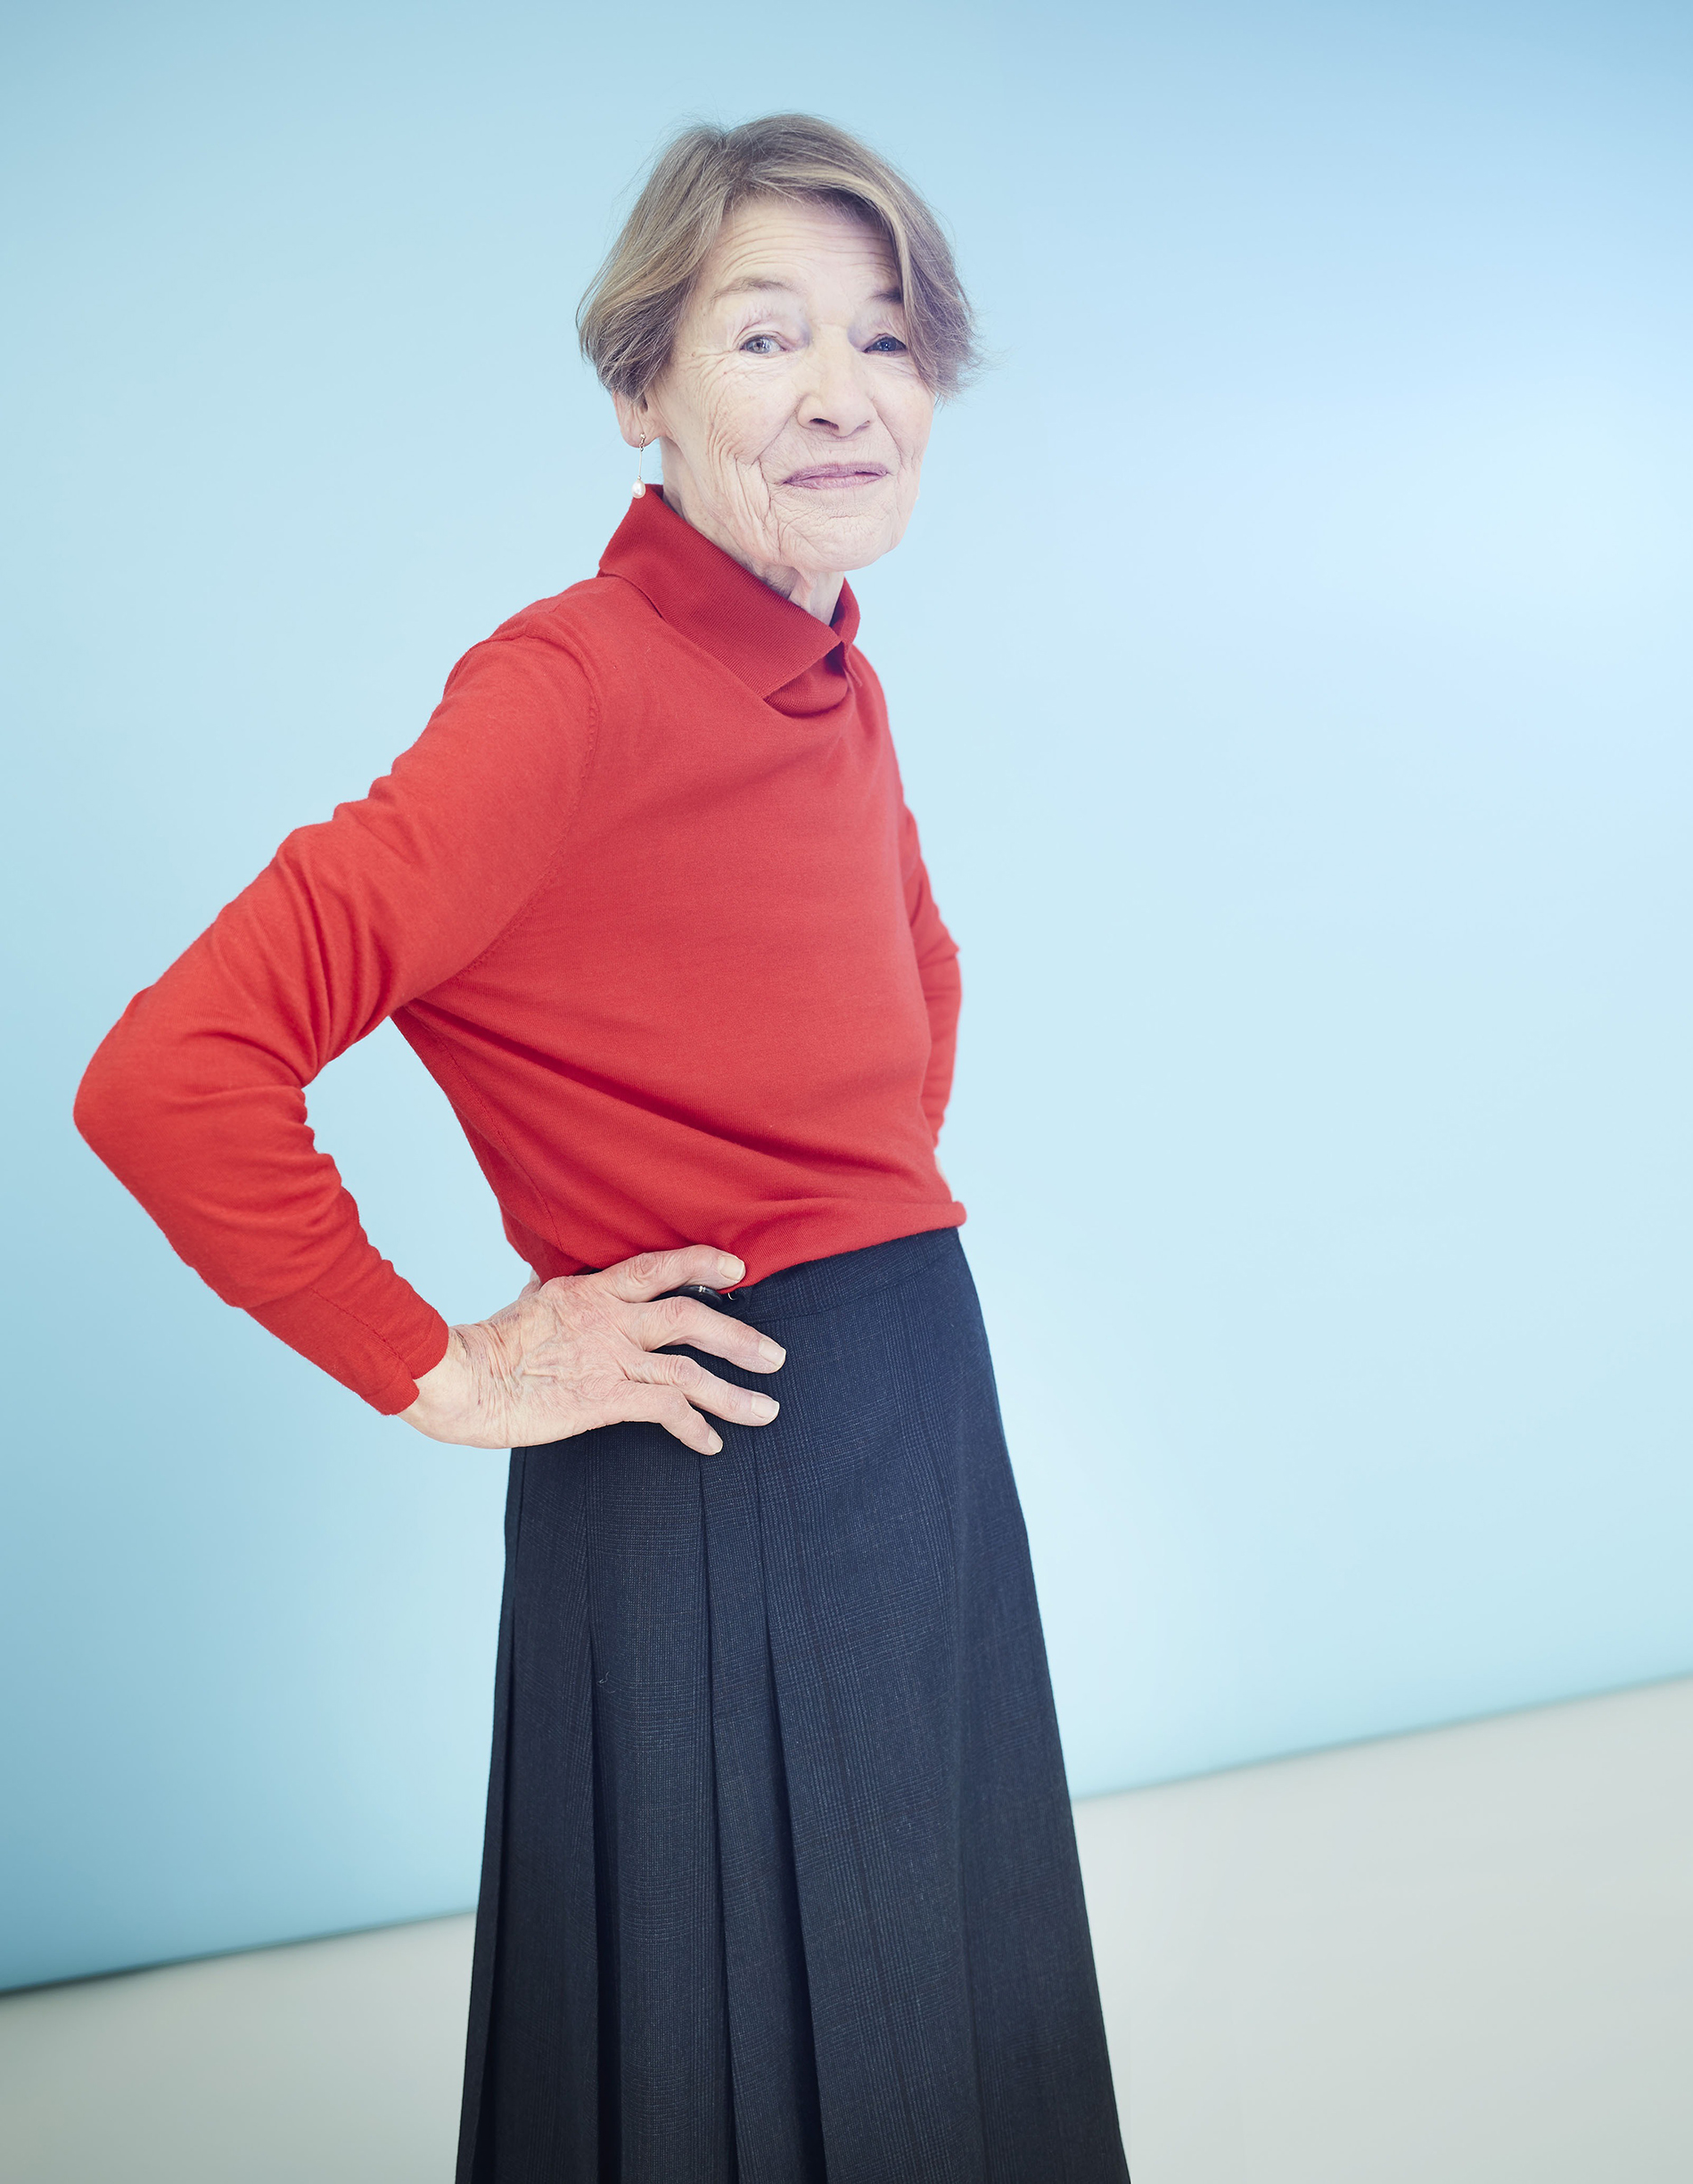 Glenda Jackson The two-time Oscar winner and former British parliamentarian is back on Broadway in Edward Albee's Three Tall Women